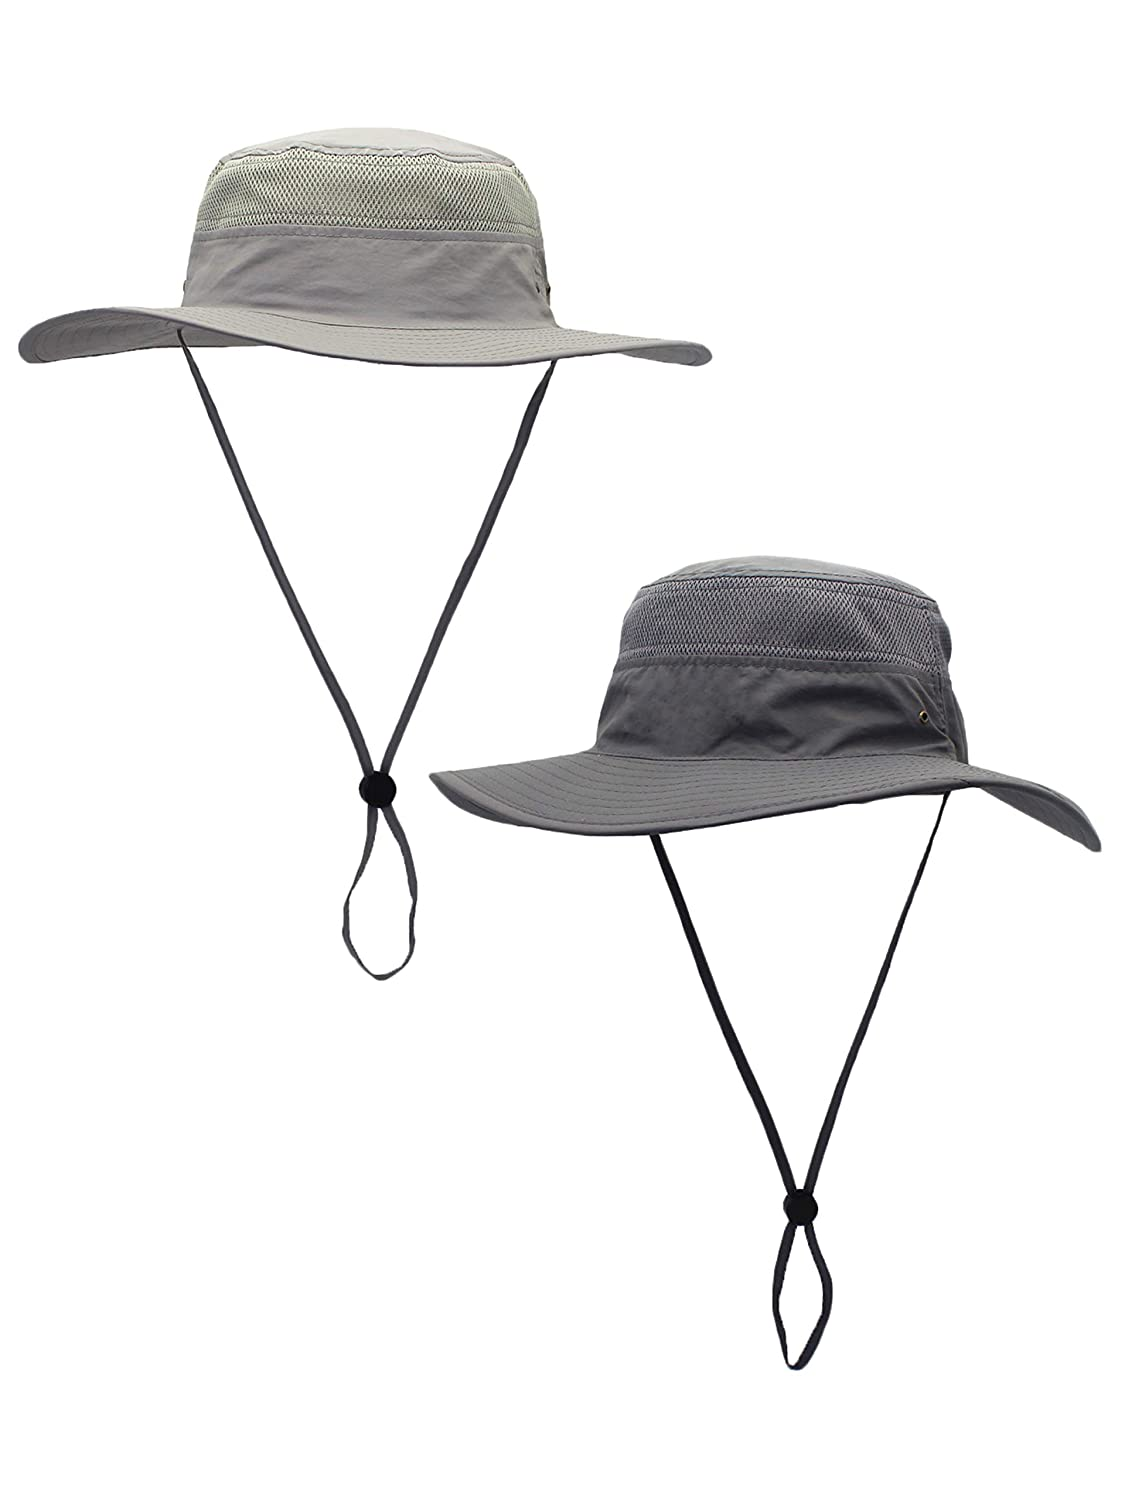 159fd4968 Unisex Outdoor Bucket Hat Fisherman Hat Breathable Quick Drying Sun  Protection for Head Circumference 55-60 cm